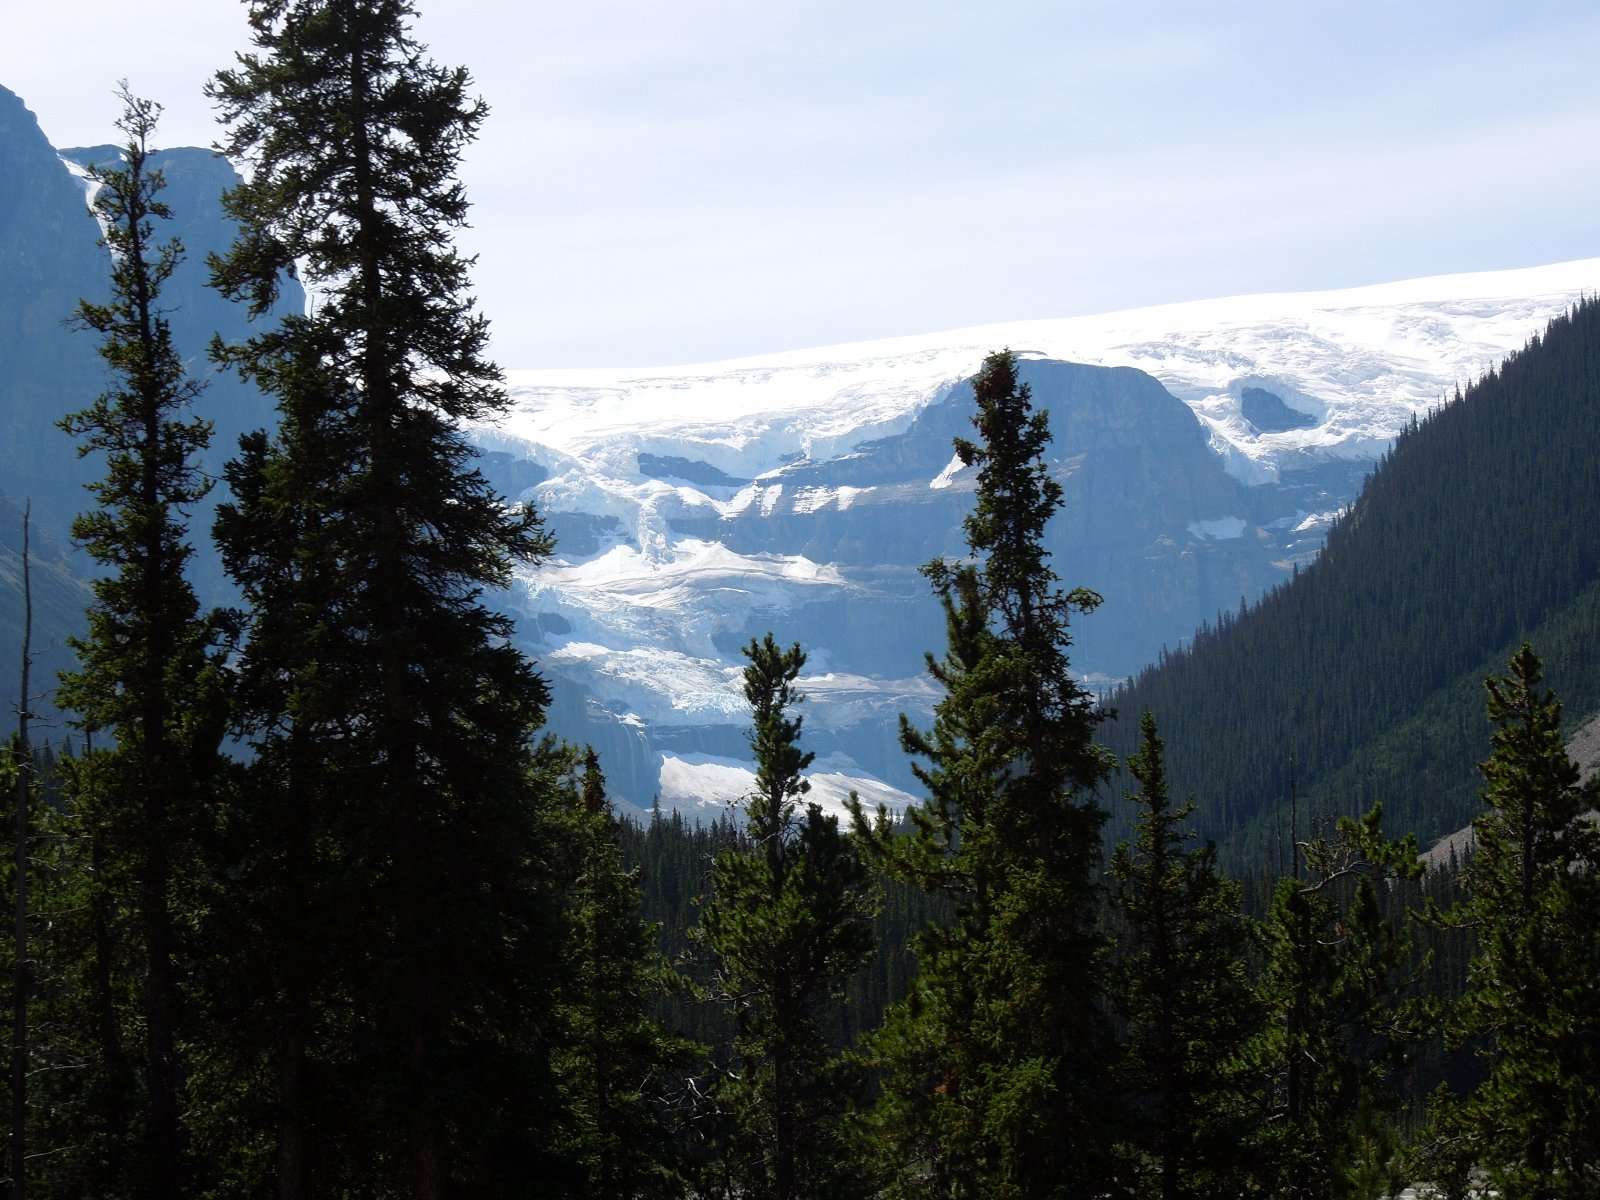 Click image for larger version  Name:Dawson Creek to Icefield Parkway to Cochrane 228.jpg Views:47 Size:365.4 KB ID:222448